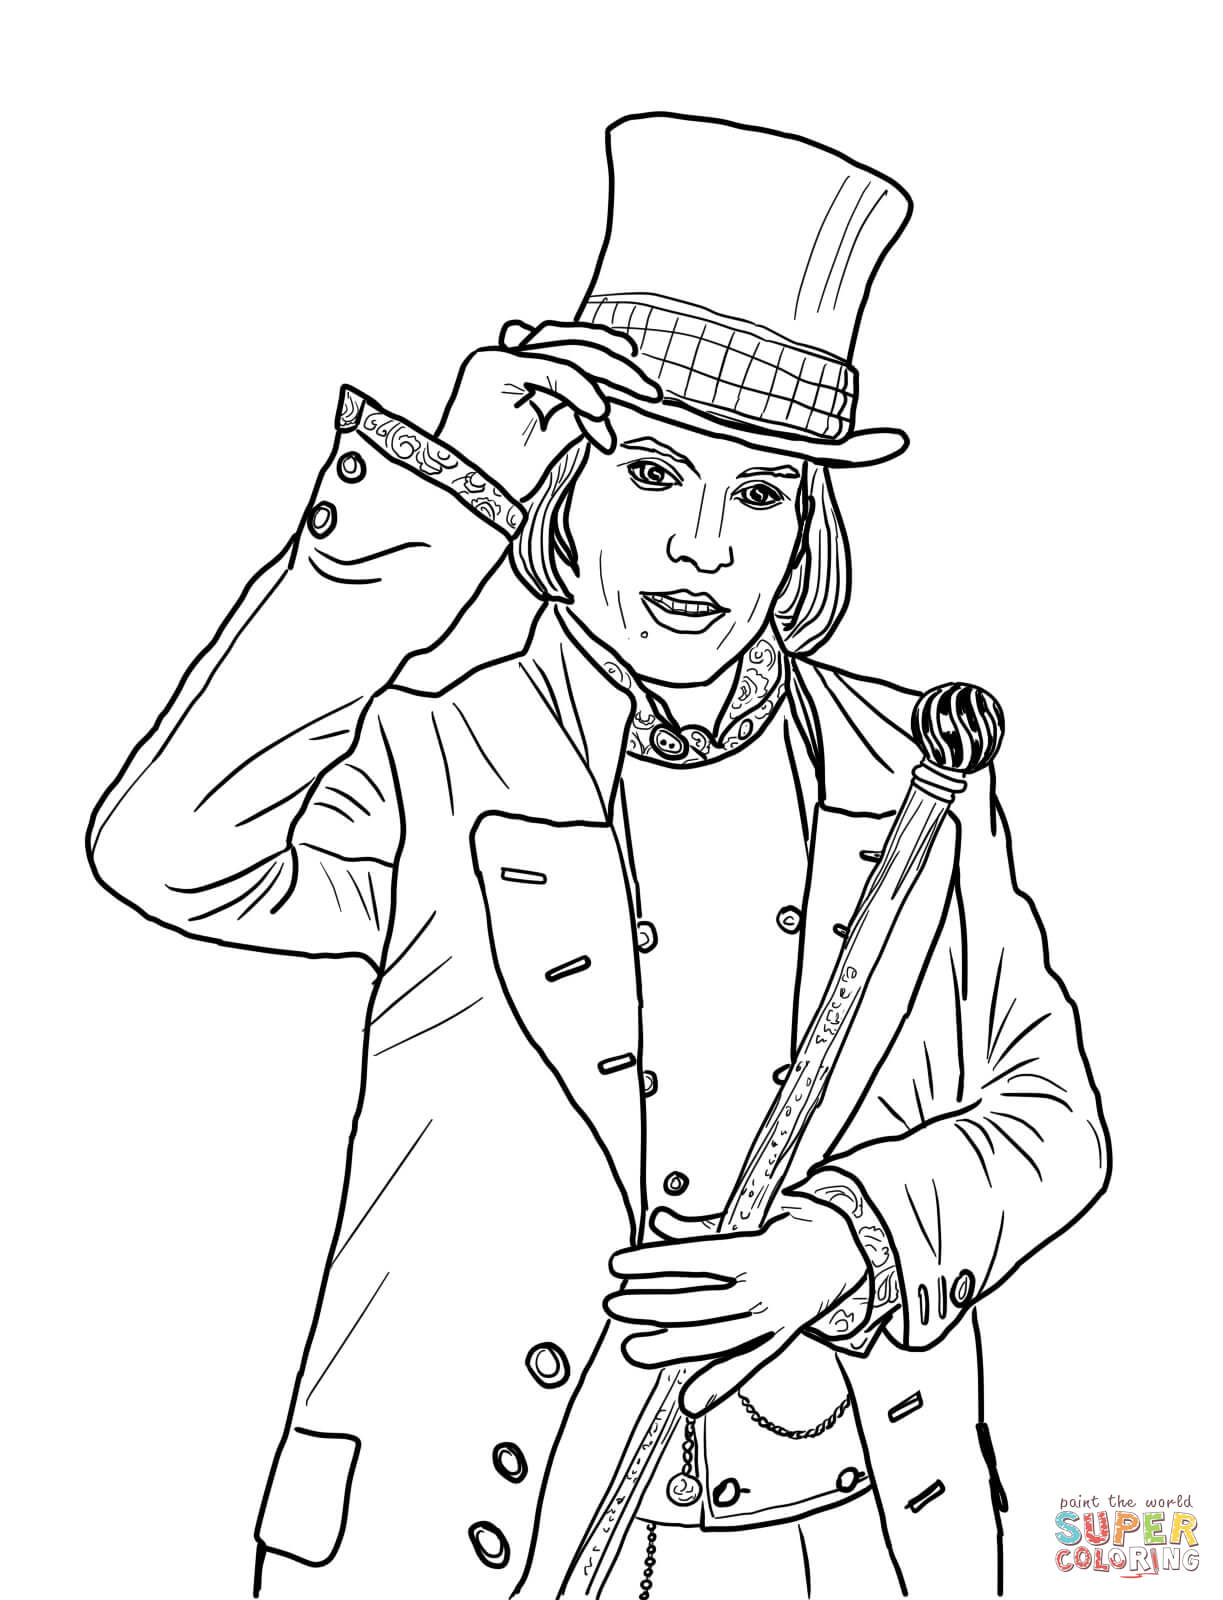 charlie and the chocolate factory coloring sheets top 10 charlie and the chocolate factory coloring pages sheets the and coloring chocolate charlie factory